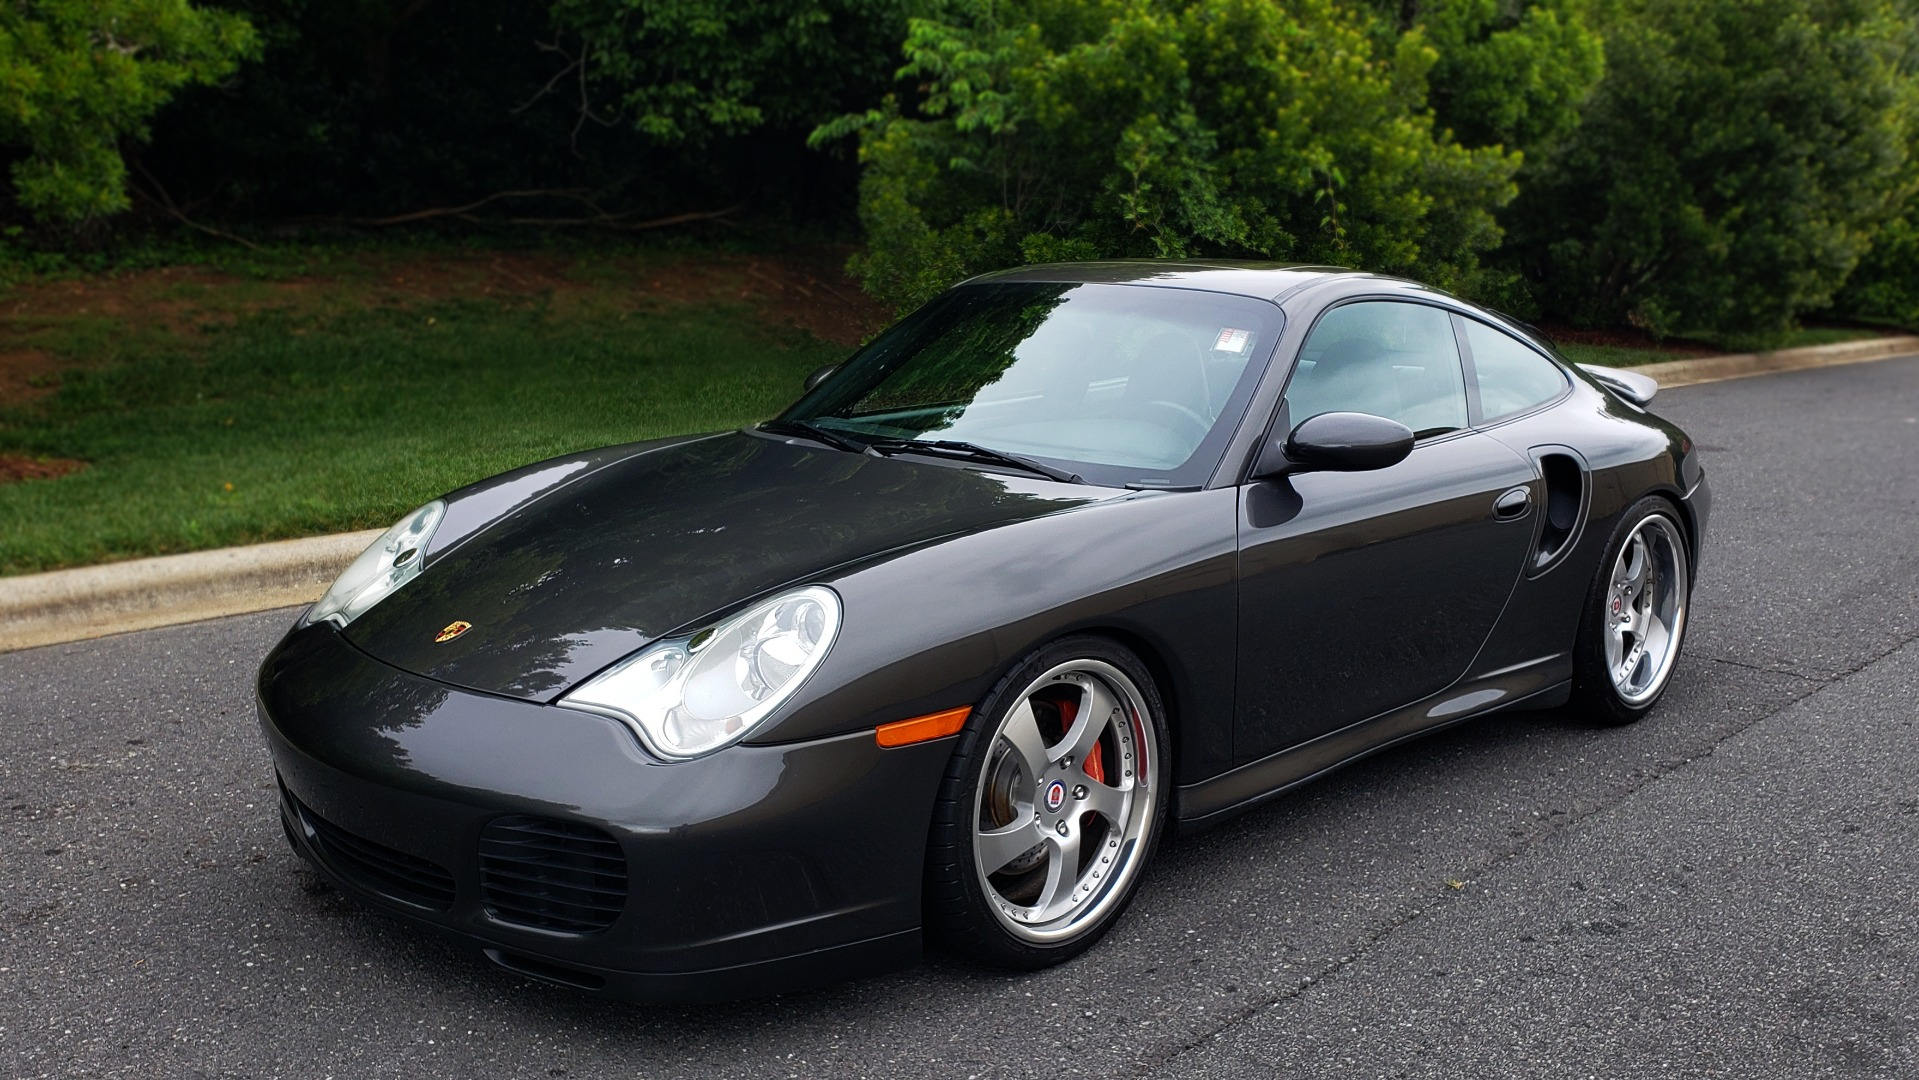 Used 2002 Porsche 911 CARRERA TURBO COUPE / 6-SPD MANUAL / PERF UPGRADES & CUSTOM TUNE for sale Sold at Formula Imports in Charlotte NC 28227 2